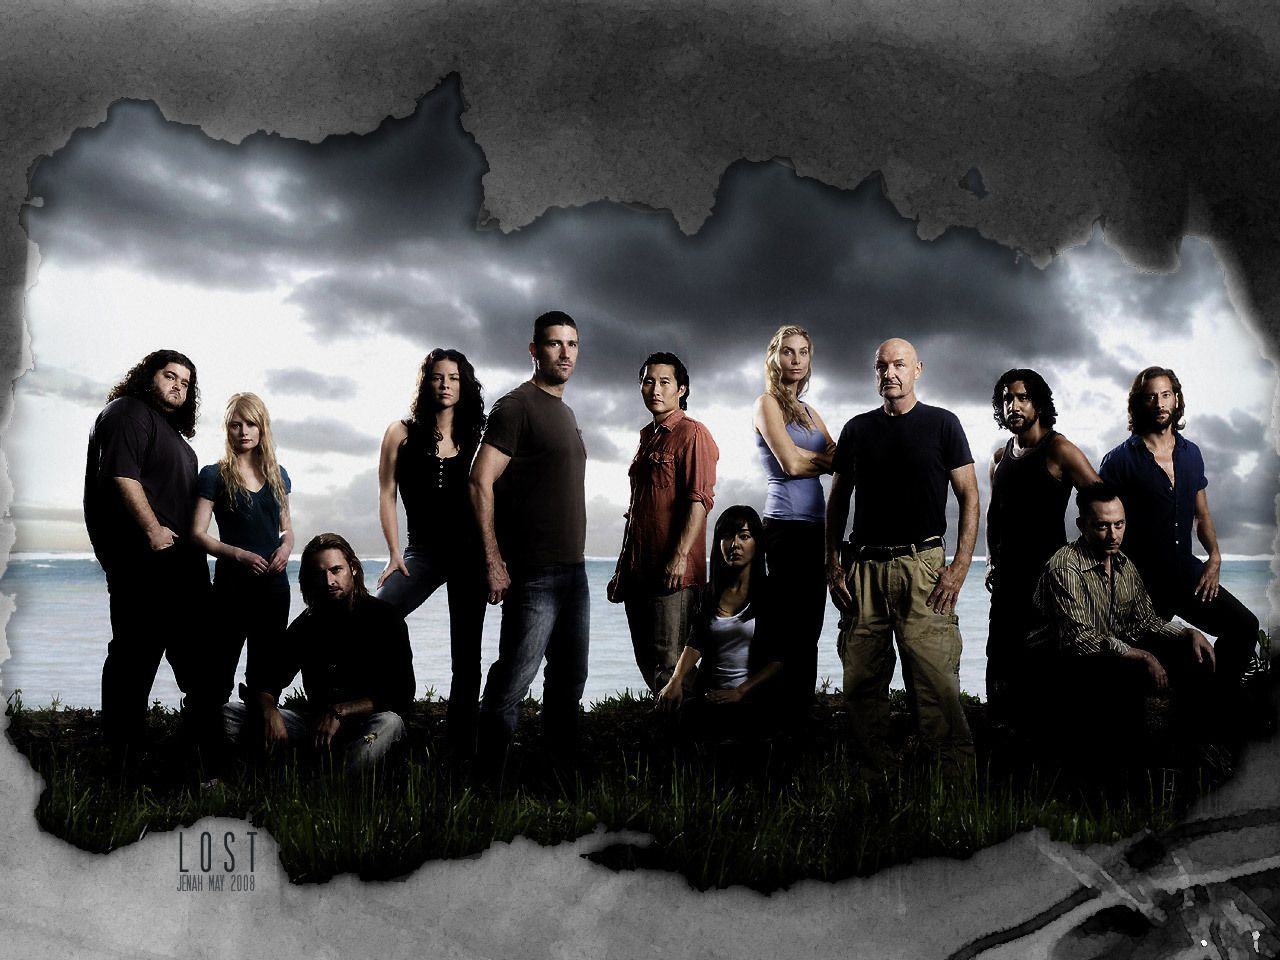 Lost Cast | Watch and Listen | Lost episodes, Lost season 4